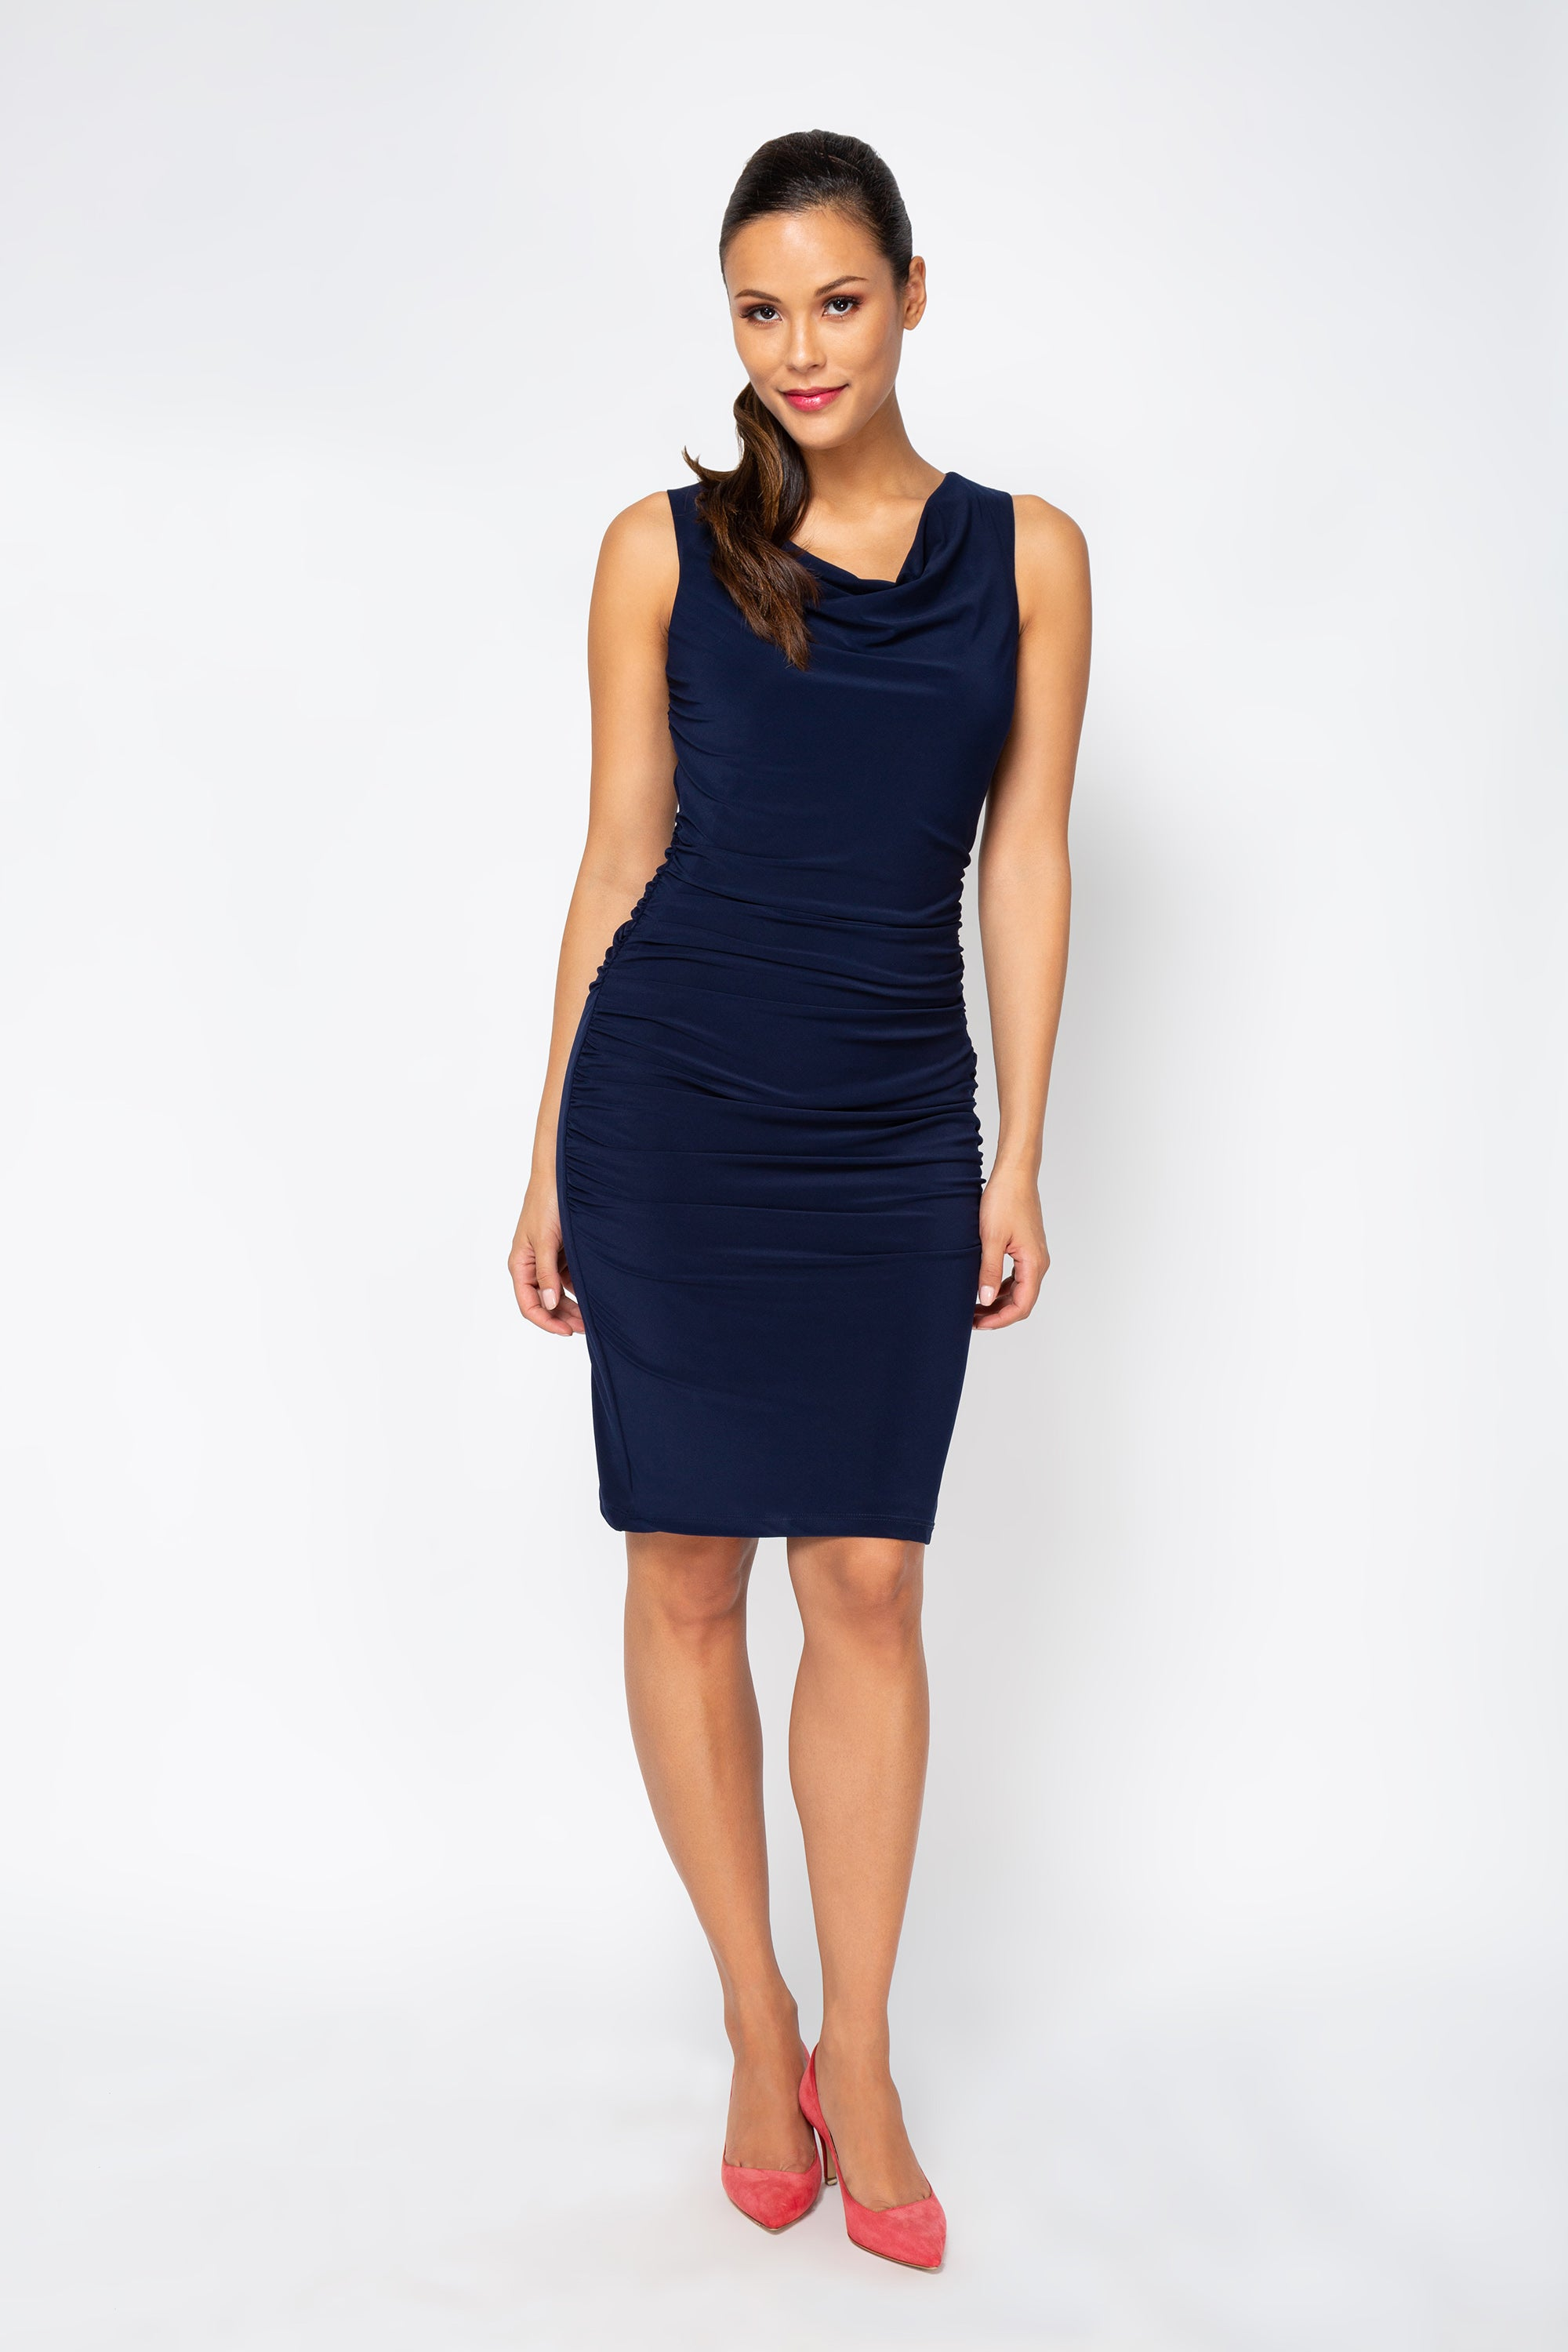 Dolce Dress - Navy